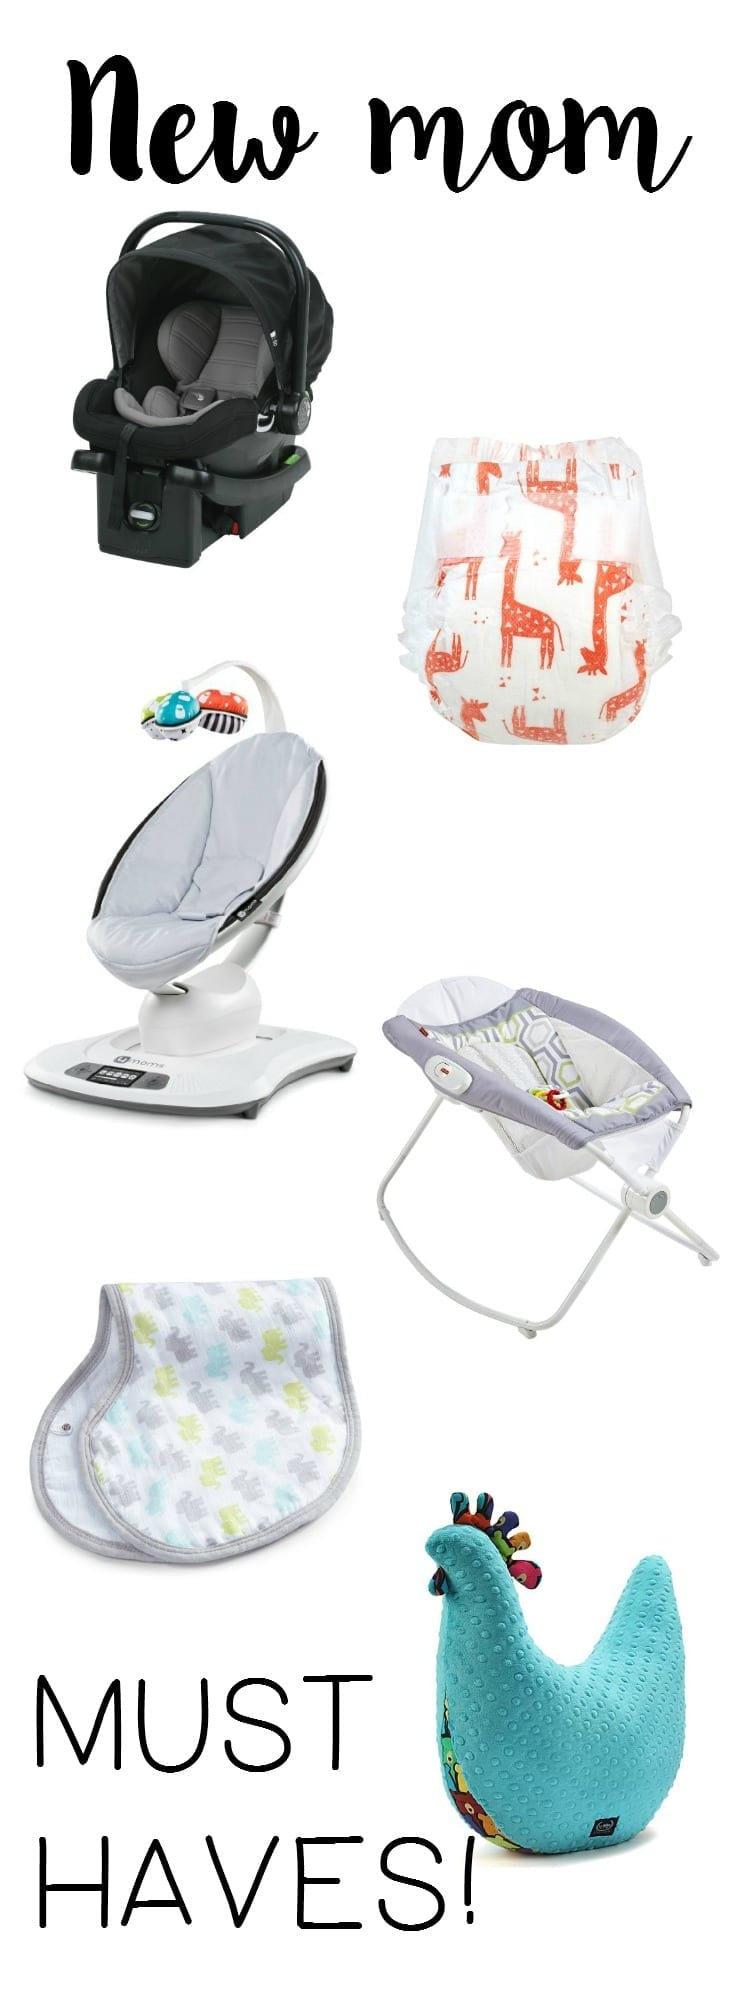 What does a new mom need Here is a list of 10 must have items to stock up on before you get to the hospital!